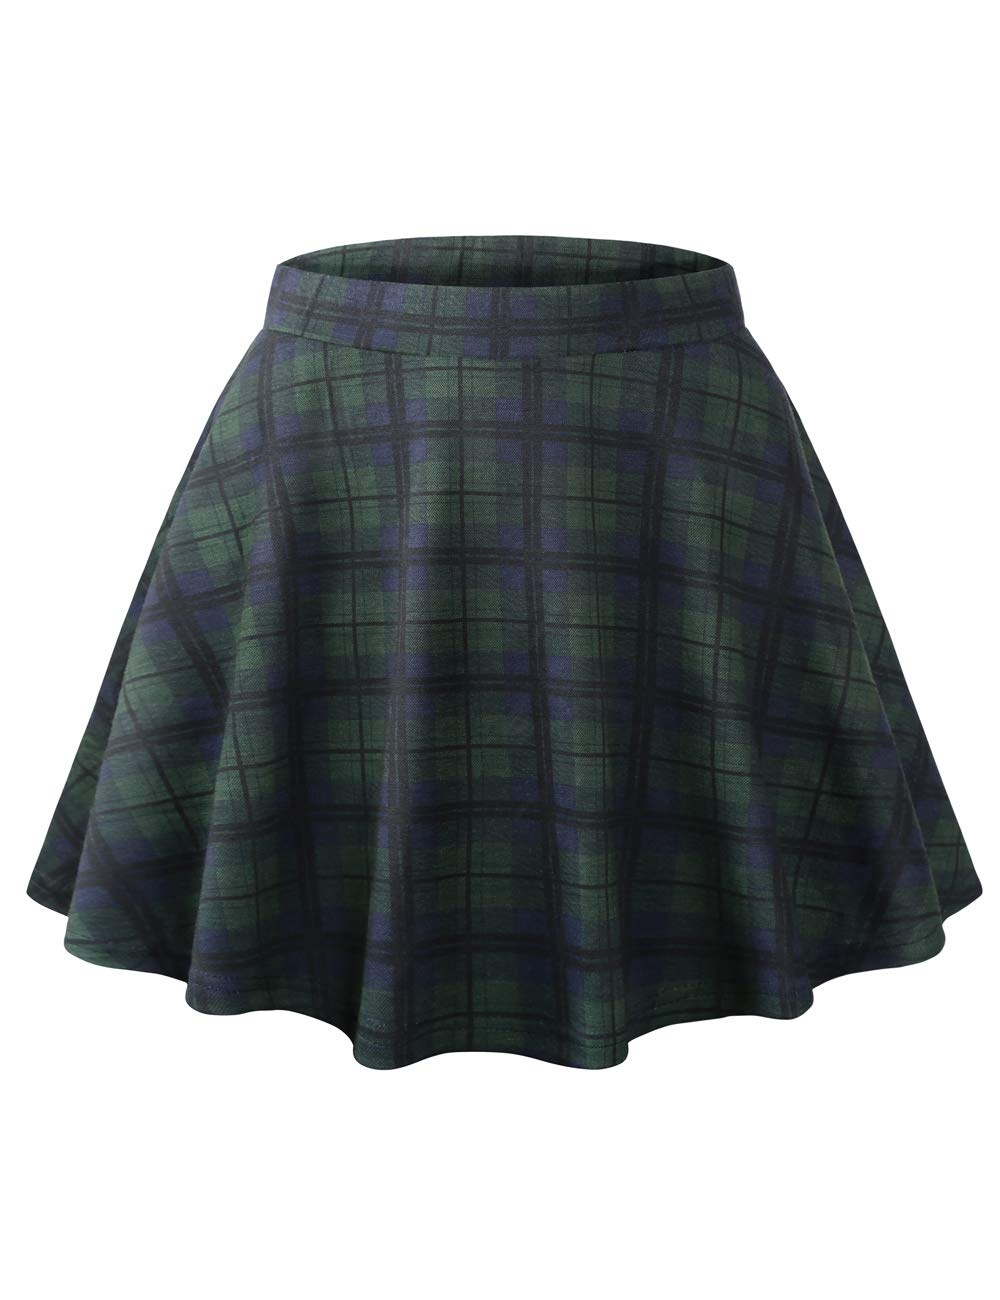 Plaid Skirts for Women, DJT FASHION Women's Elastic Basic A Line Plaid Pleated Circle Stretchy Flared Skater Skirt Green S